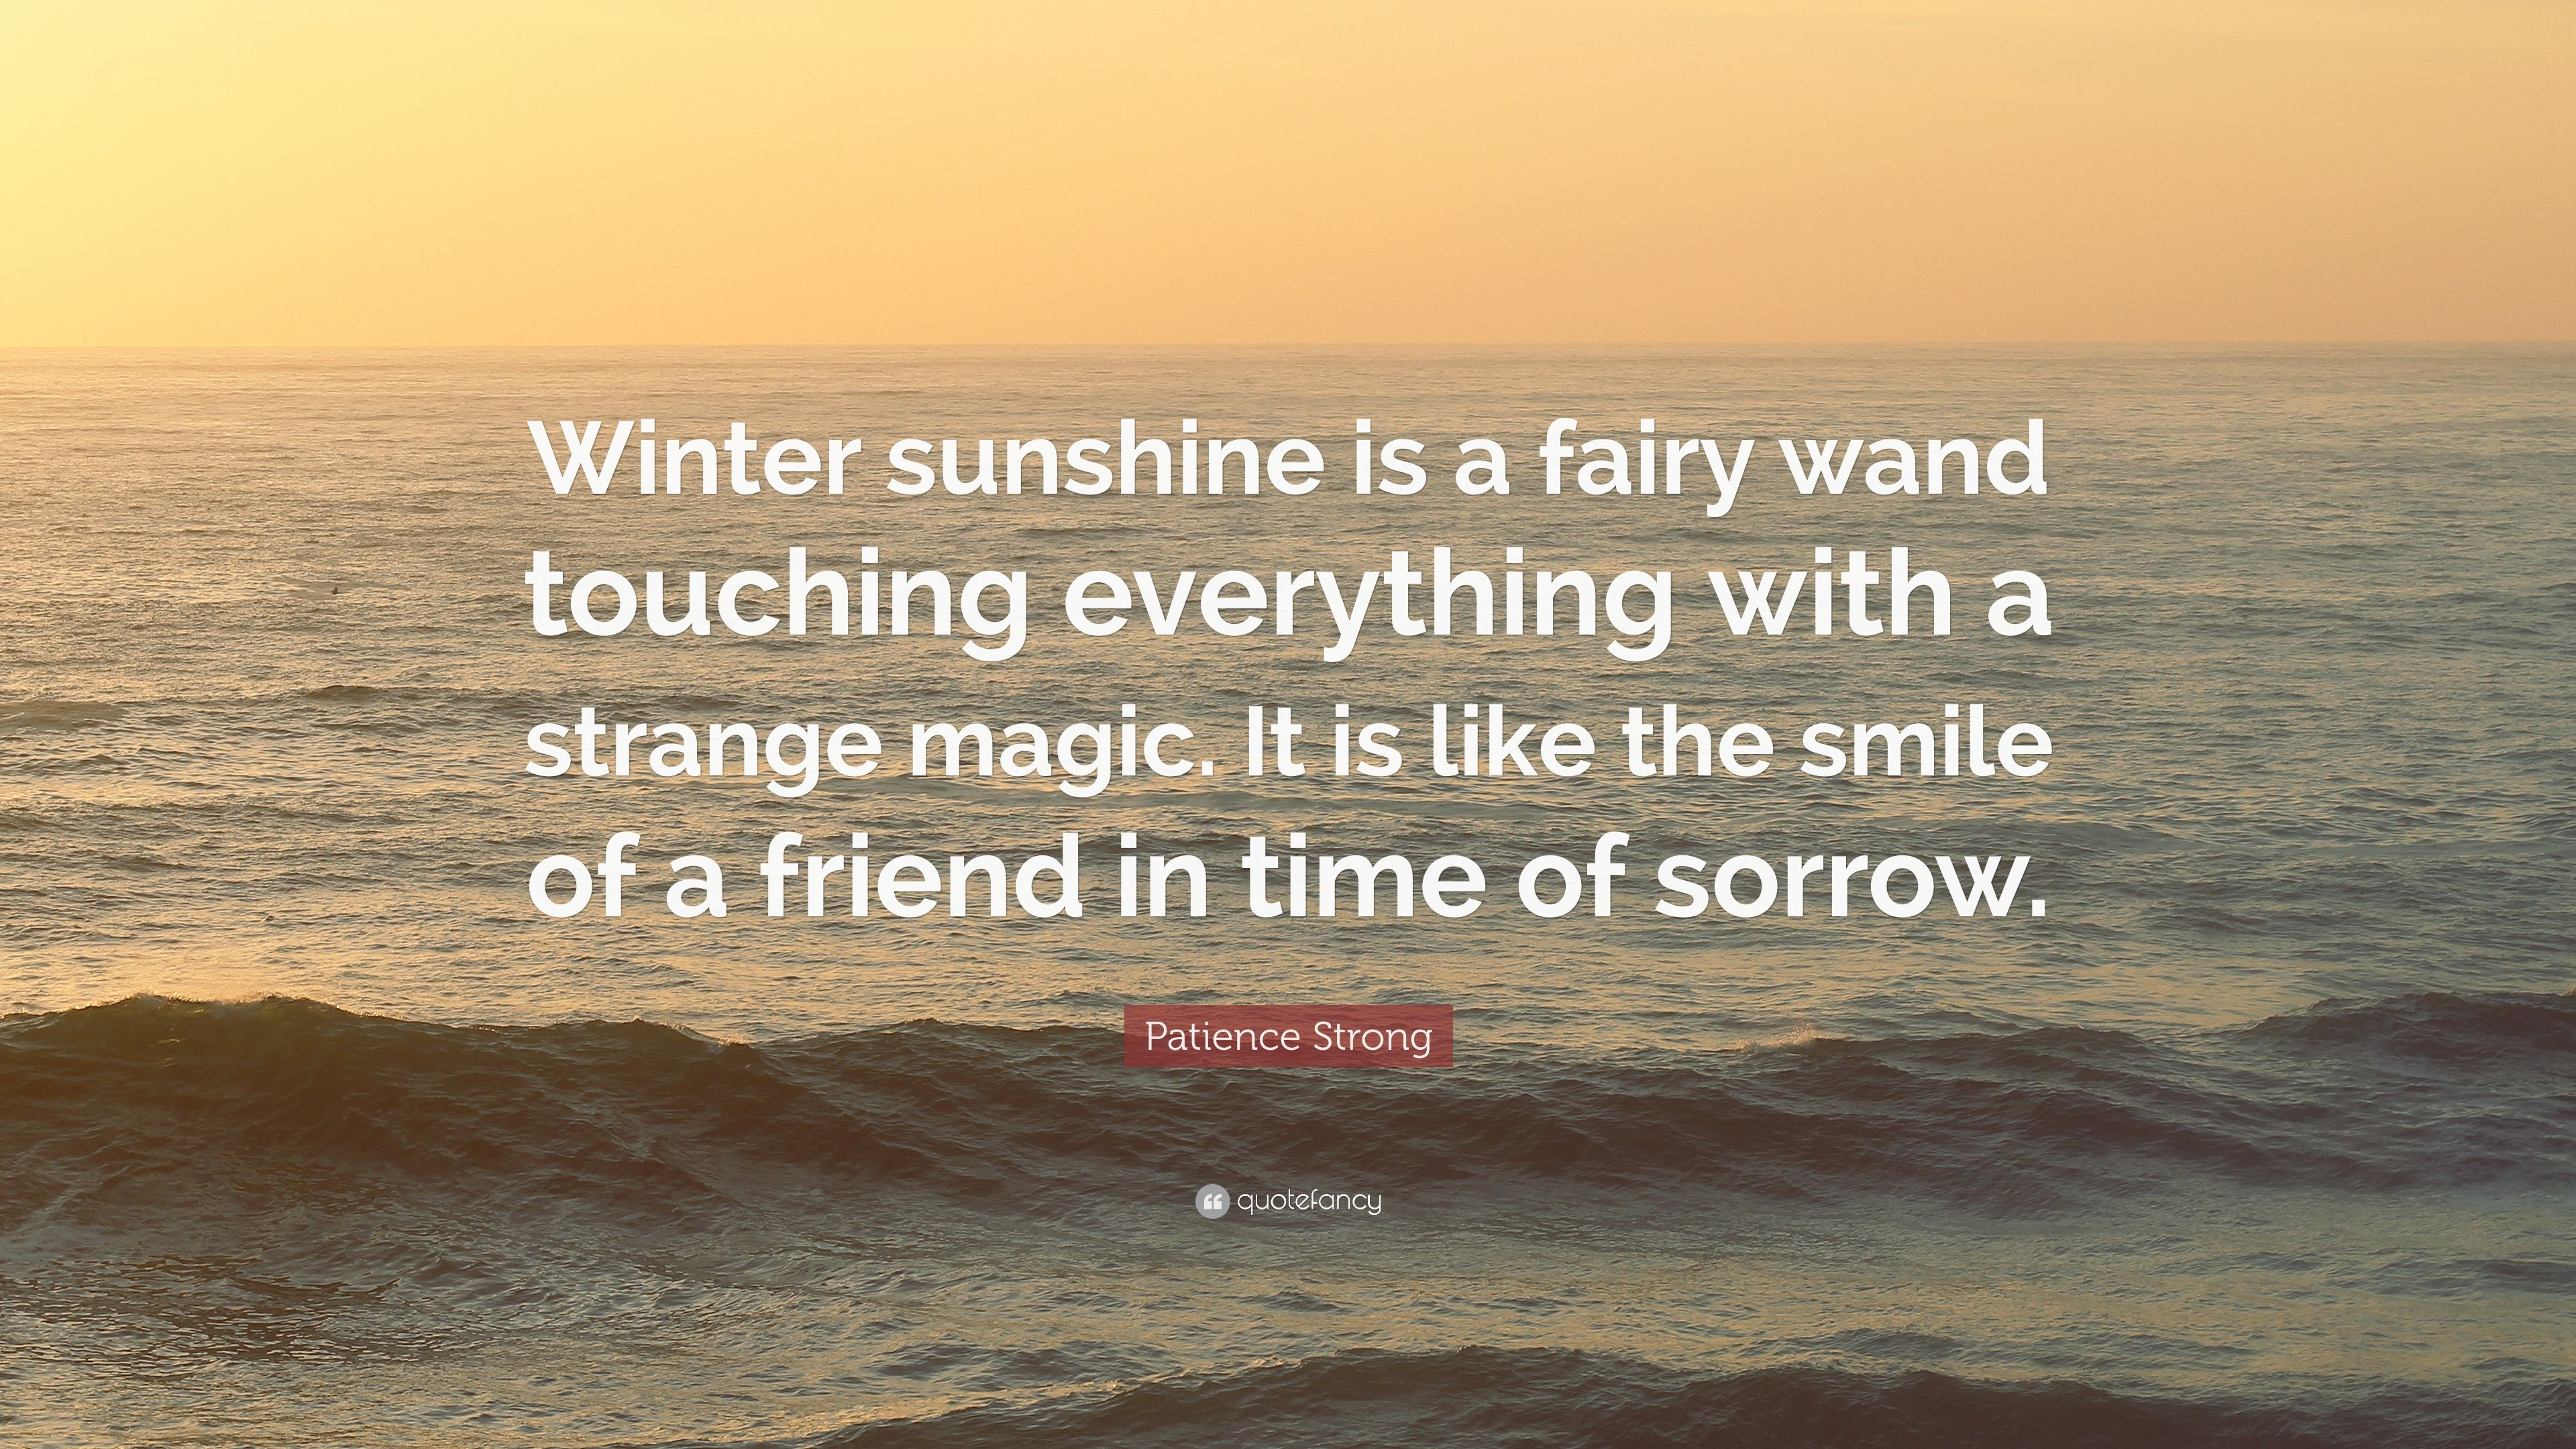 Quotes winter sunshine Funny and